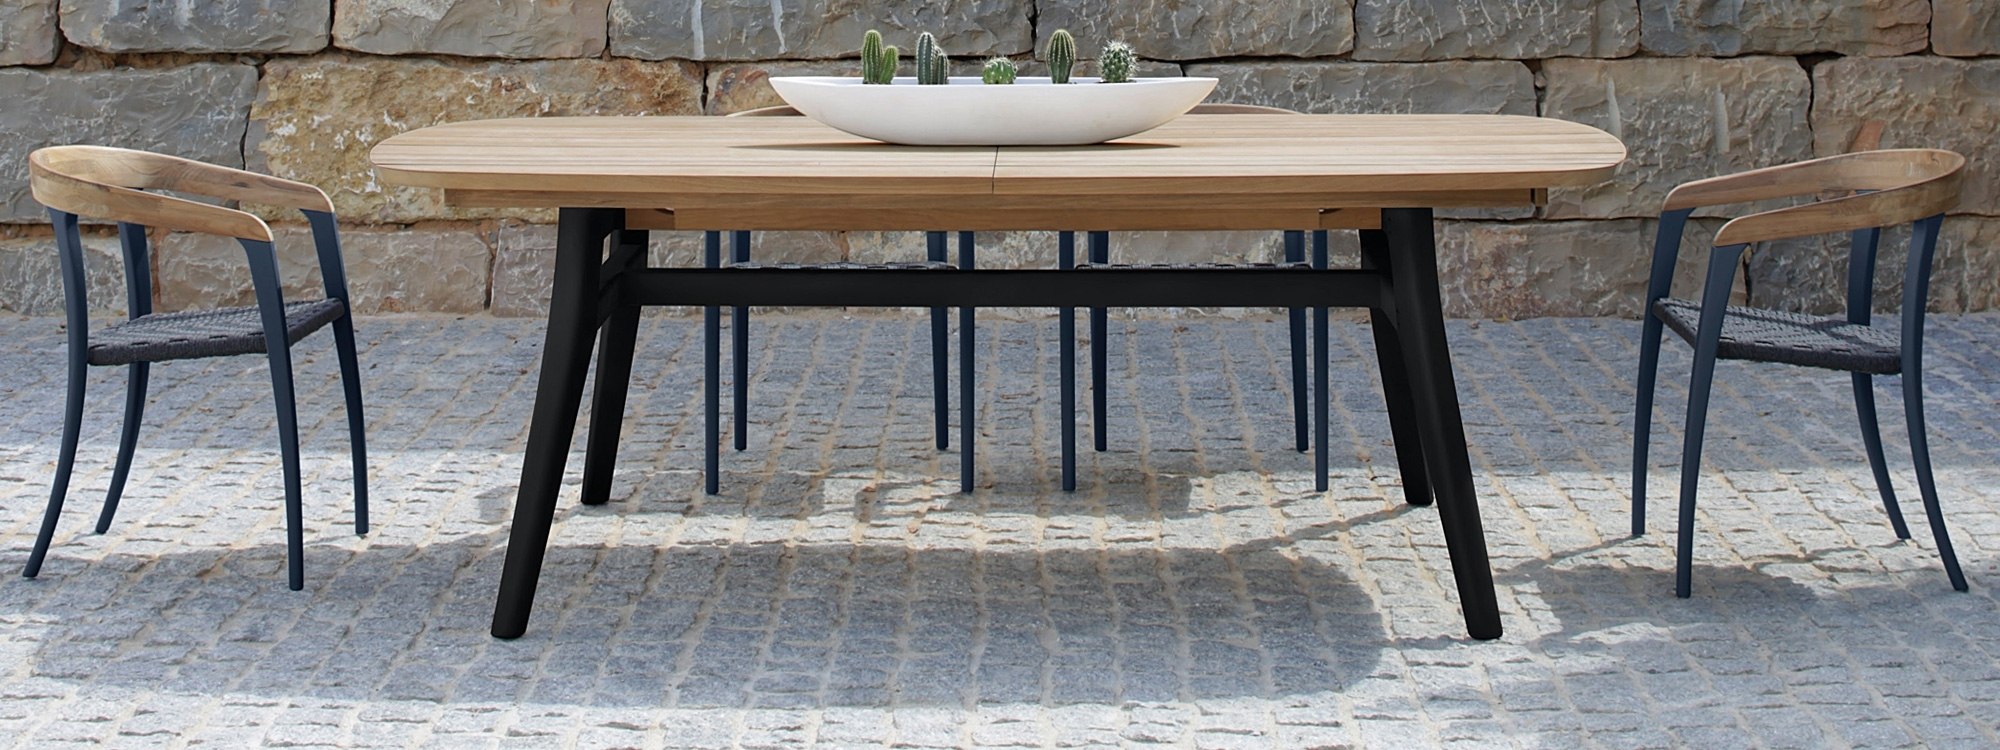 Famous Luxury Outdoor Dining Tables & Chairs. Modern Design + Premium Quality (View 9 of 25)